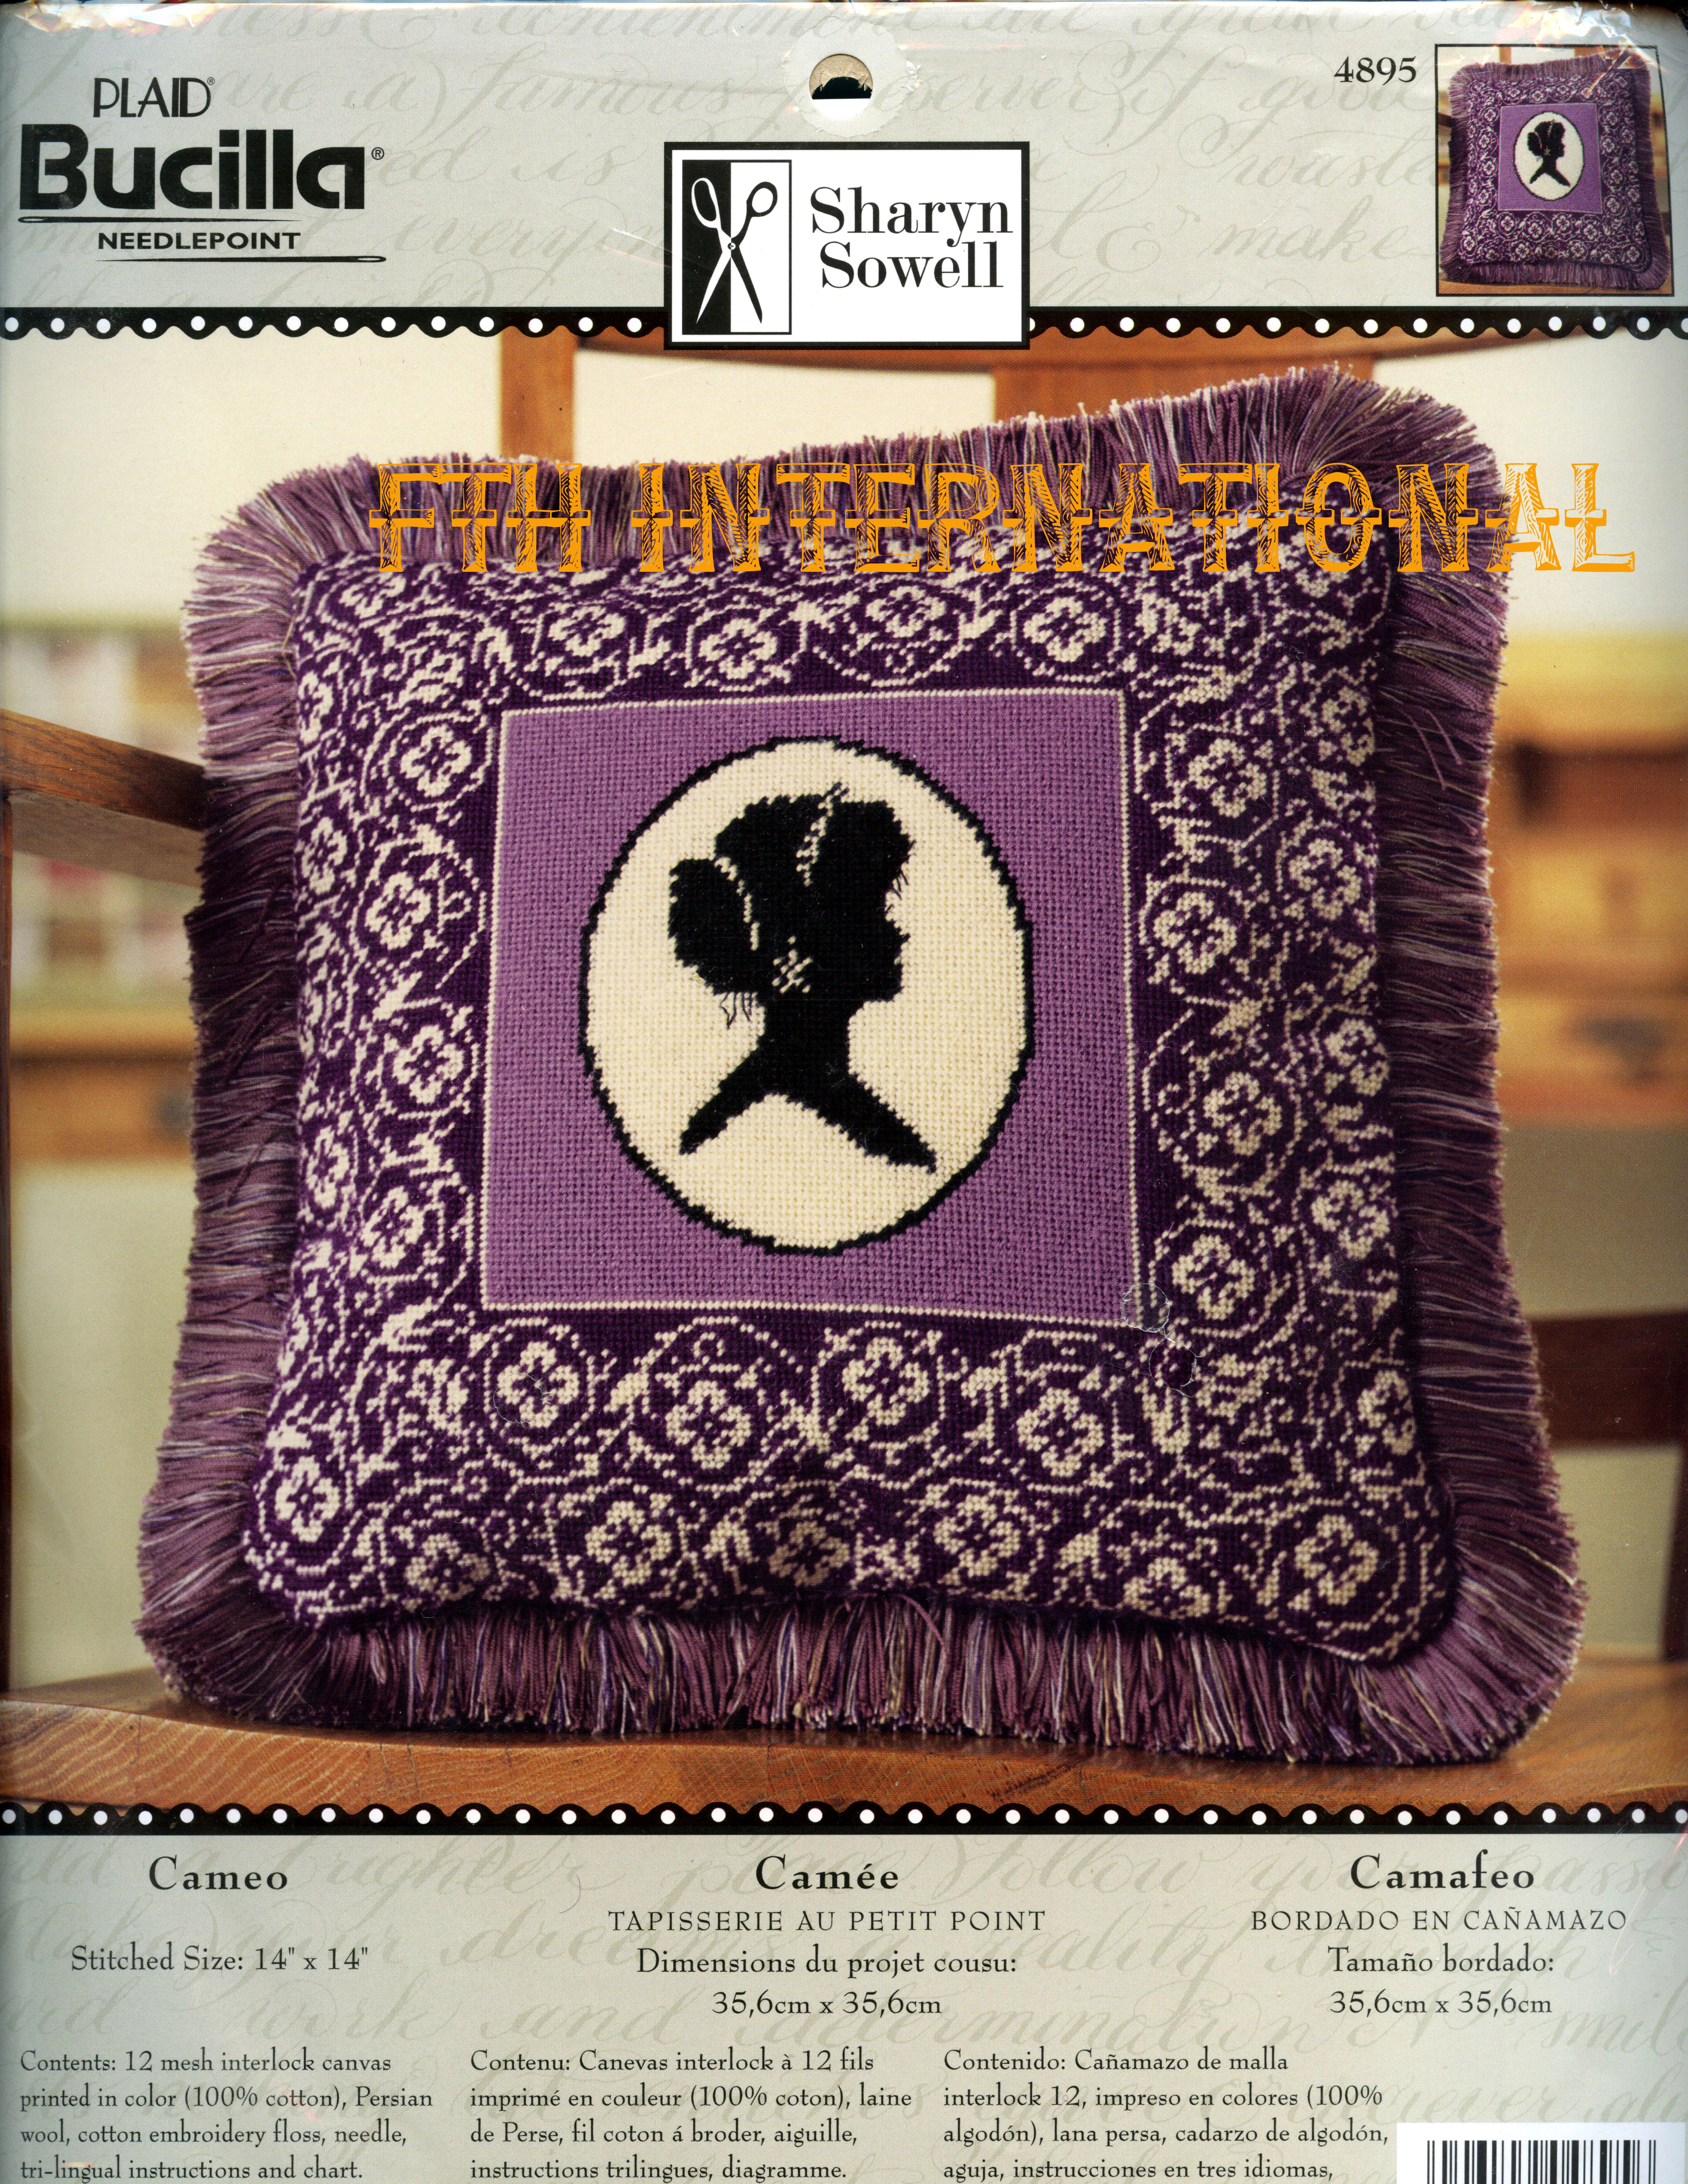 Cameo Pillow Bucilla Needlepoint Picture Kit 4895 Fth